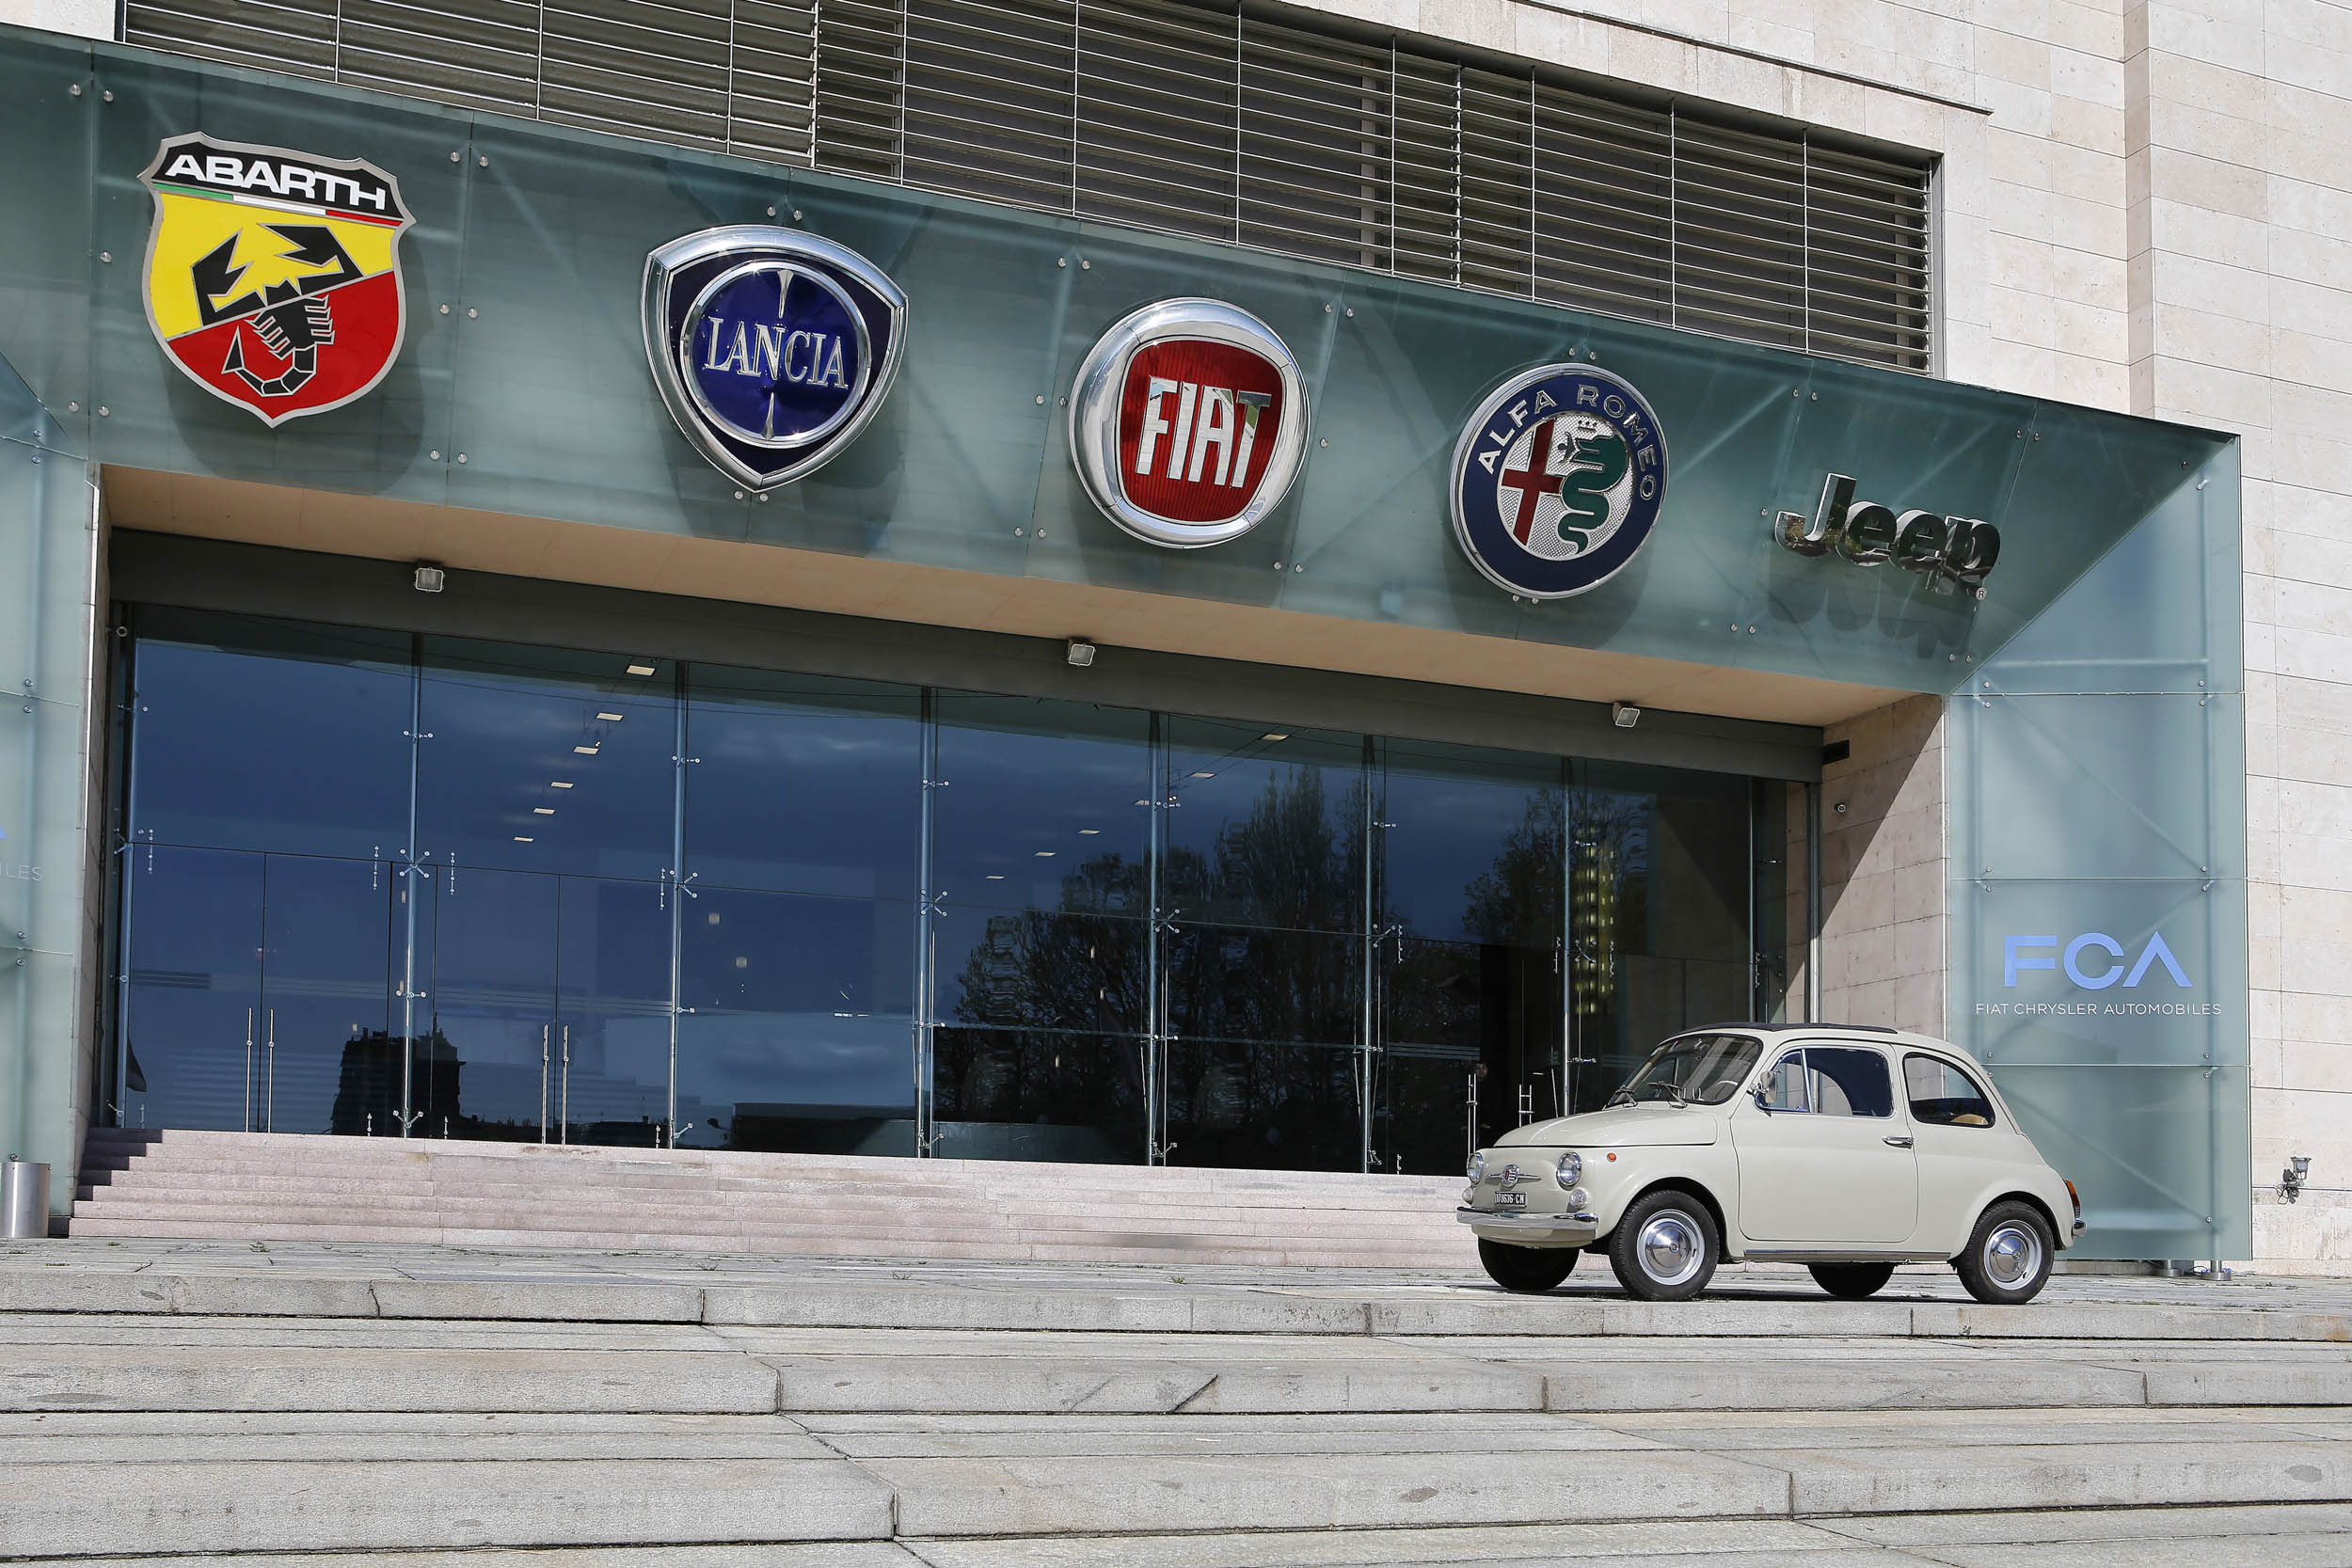 FIAT 500 F in front of the headquarters